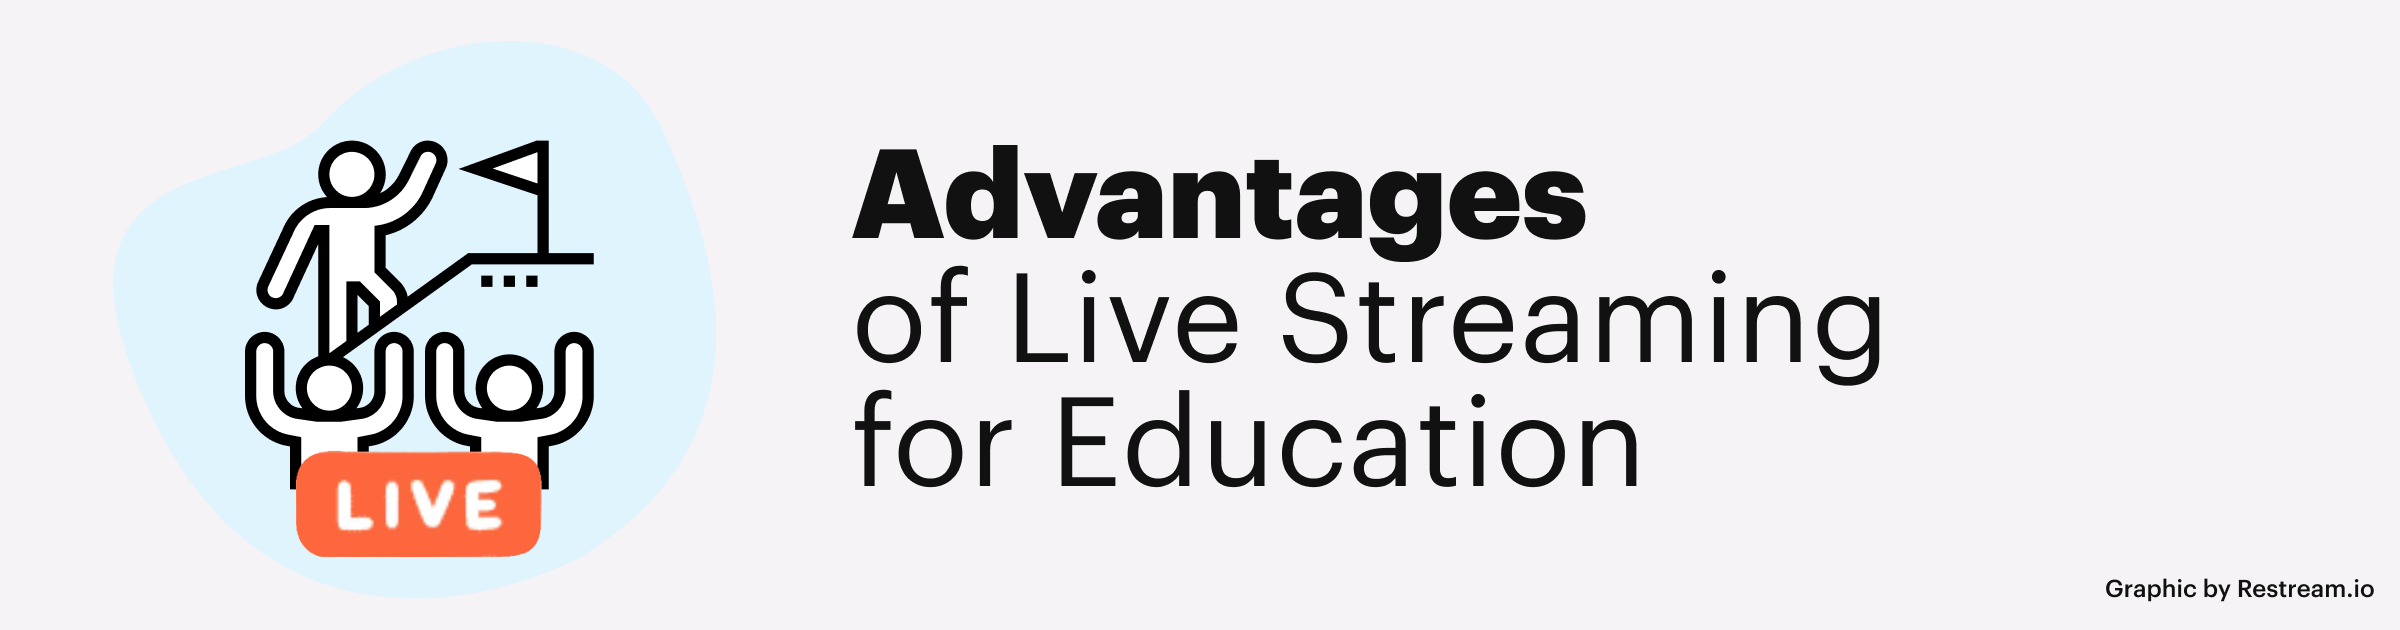 Advantages of Live Streaming for Education